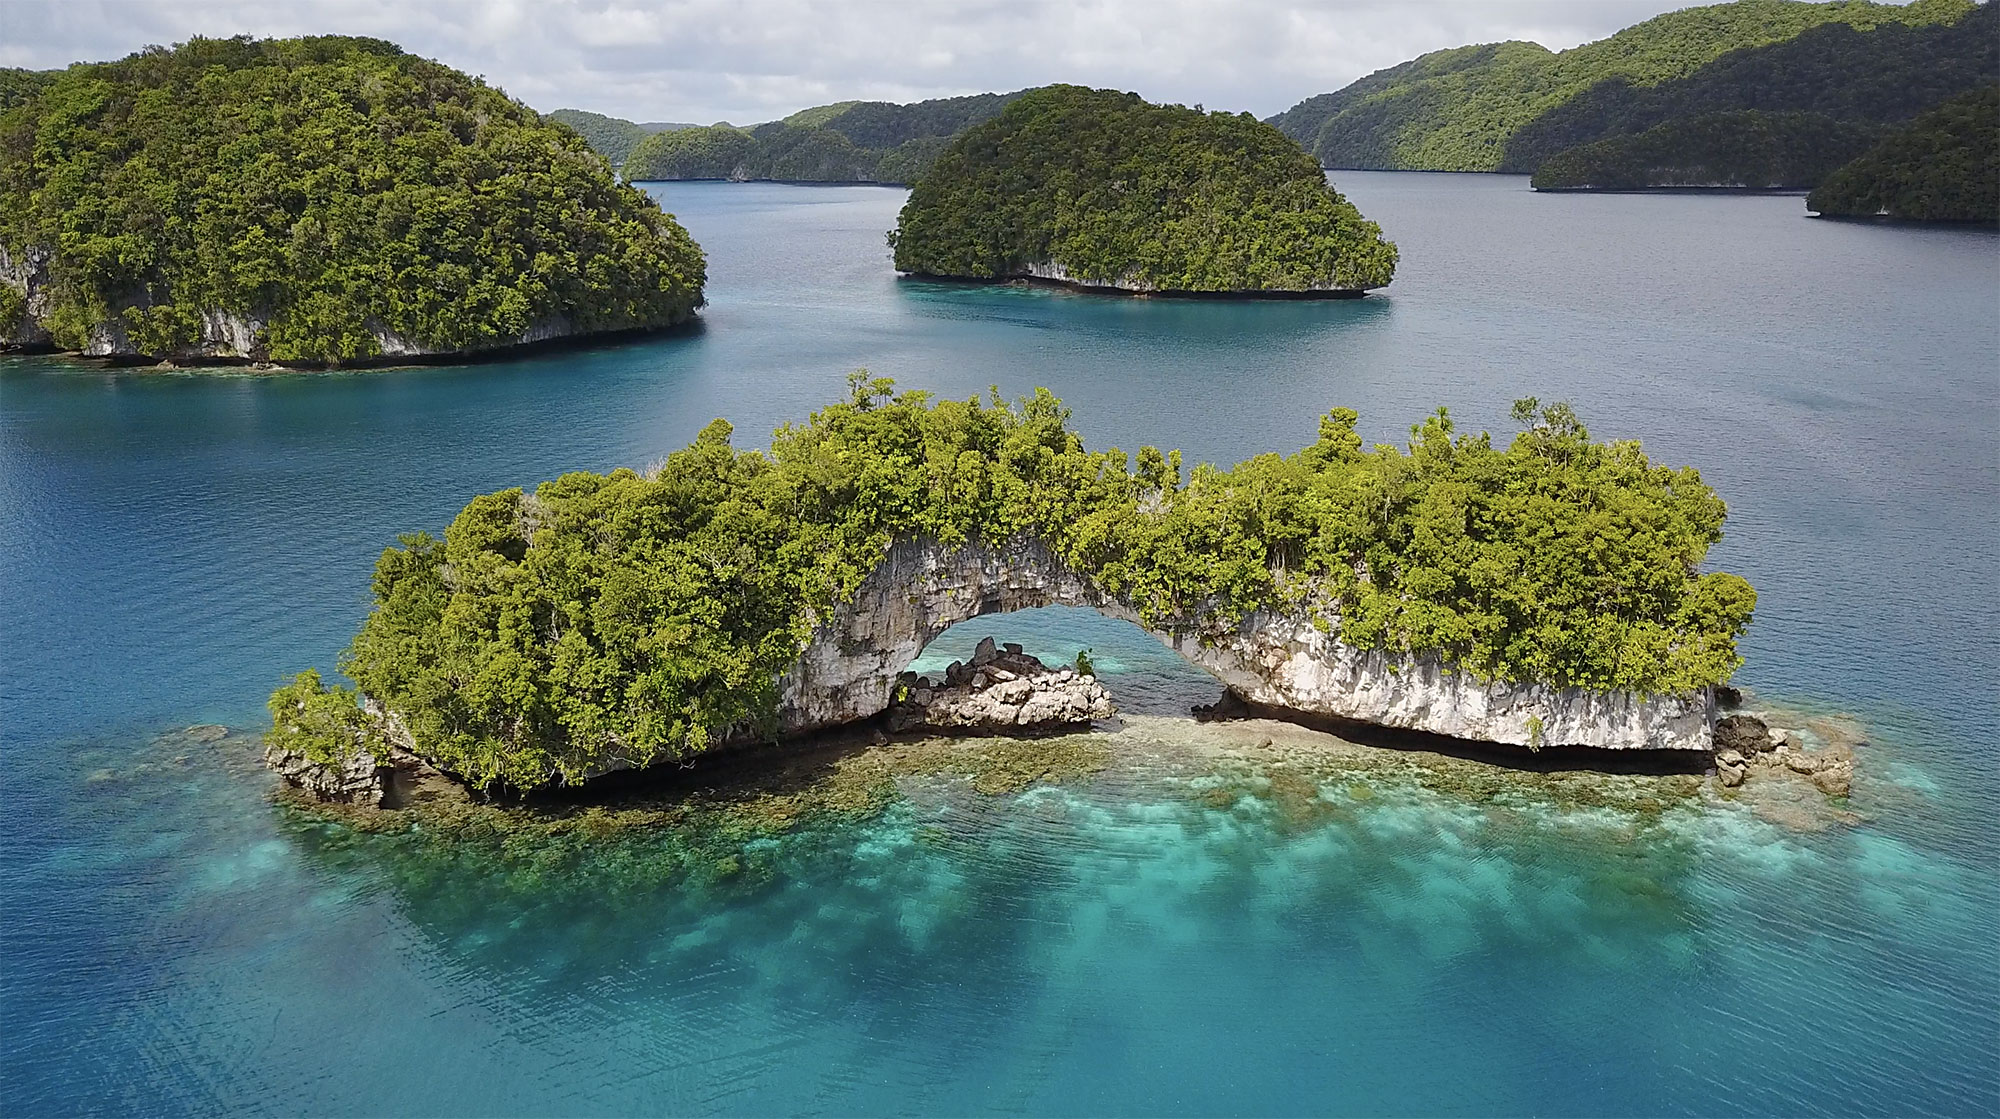 The Arch in the Rock Islands Palau